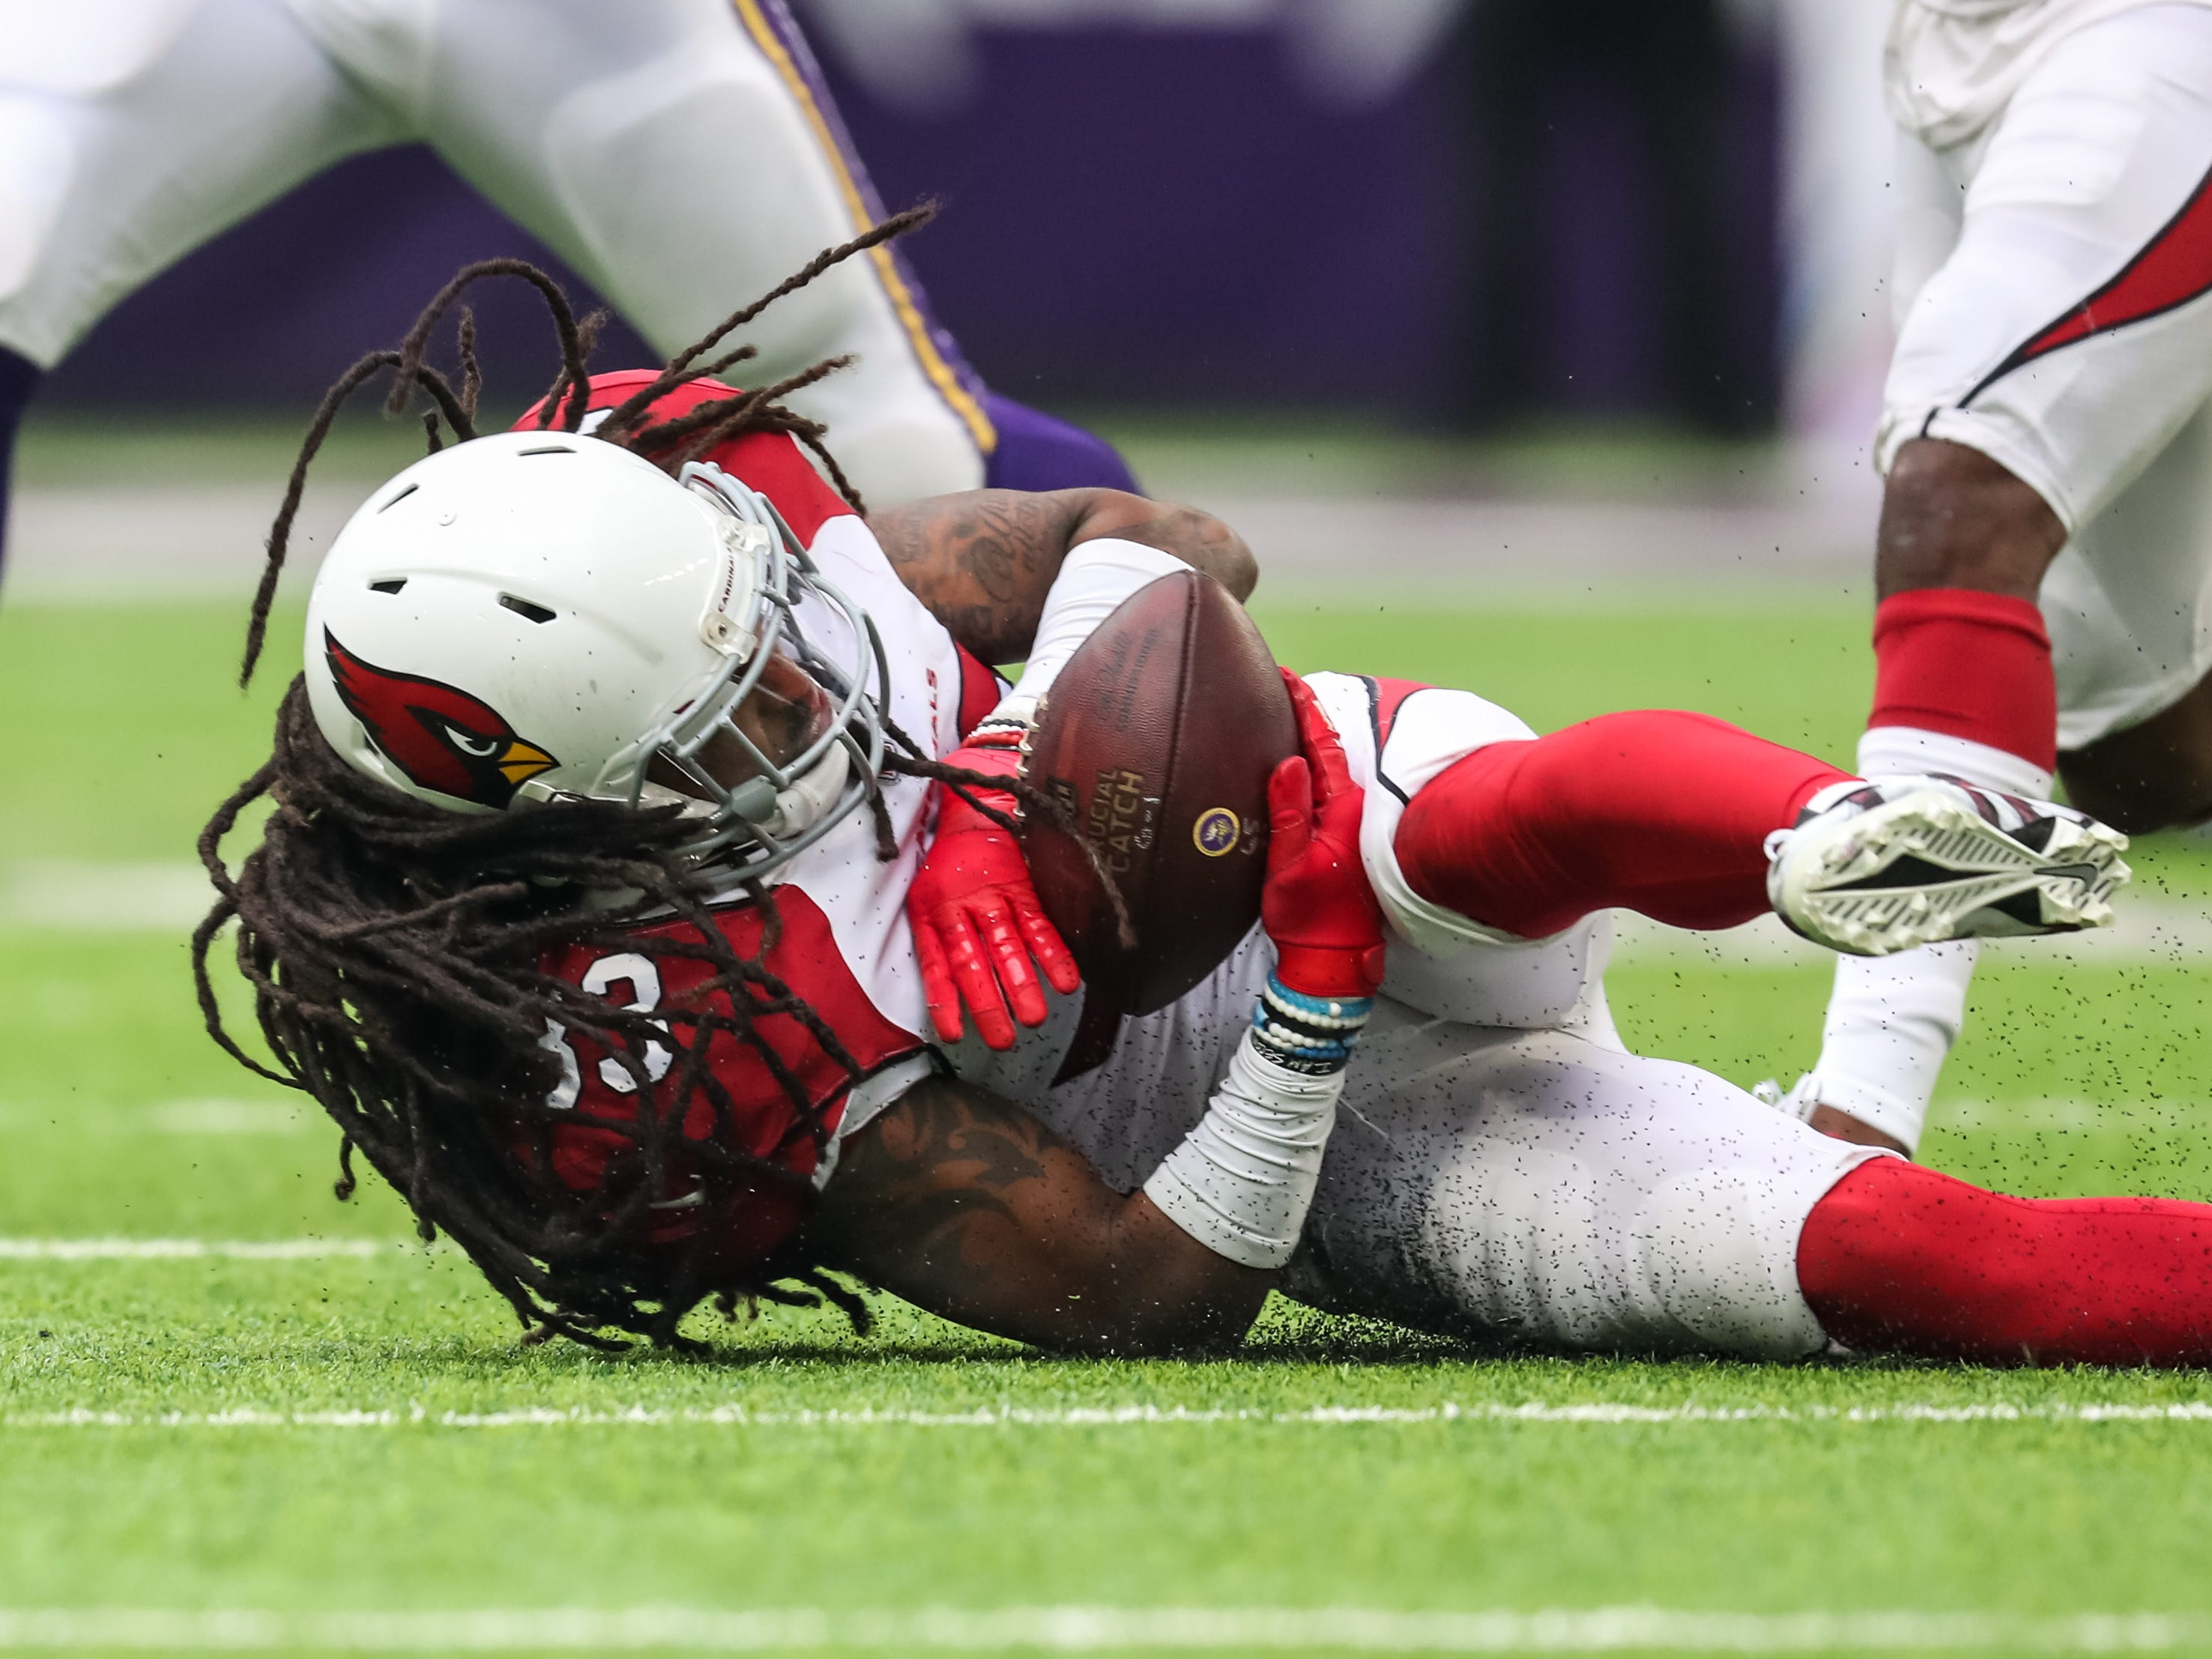 Oct 14, 2018; Minneapolis, MN, USA; Arizona Cardinals safety Tre Boston (33) intercepts a pass during the second quarter against the Minnesota Vikings at U.S. Bank Stadium. Mandatory Credit: Brace Hemmelgarn-USA TODAY Sports